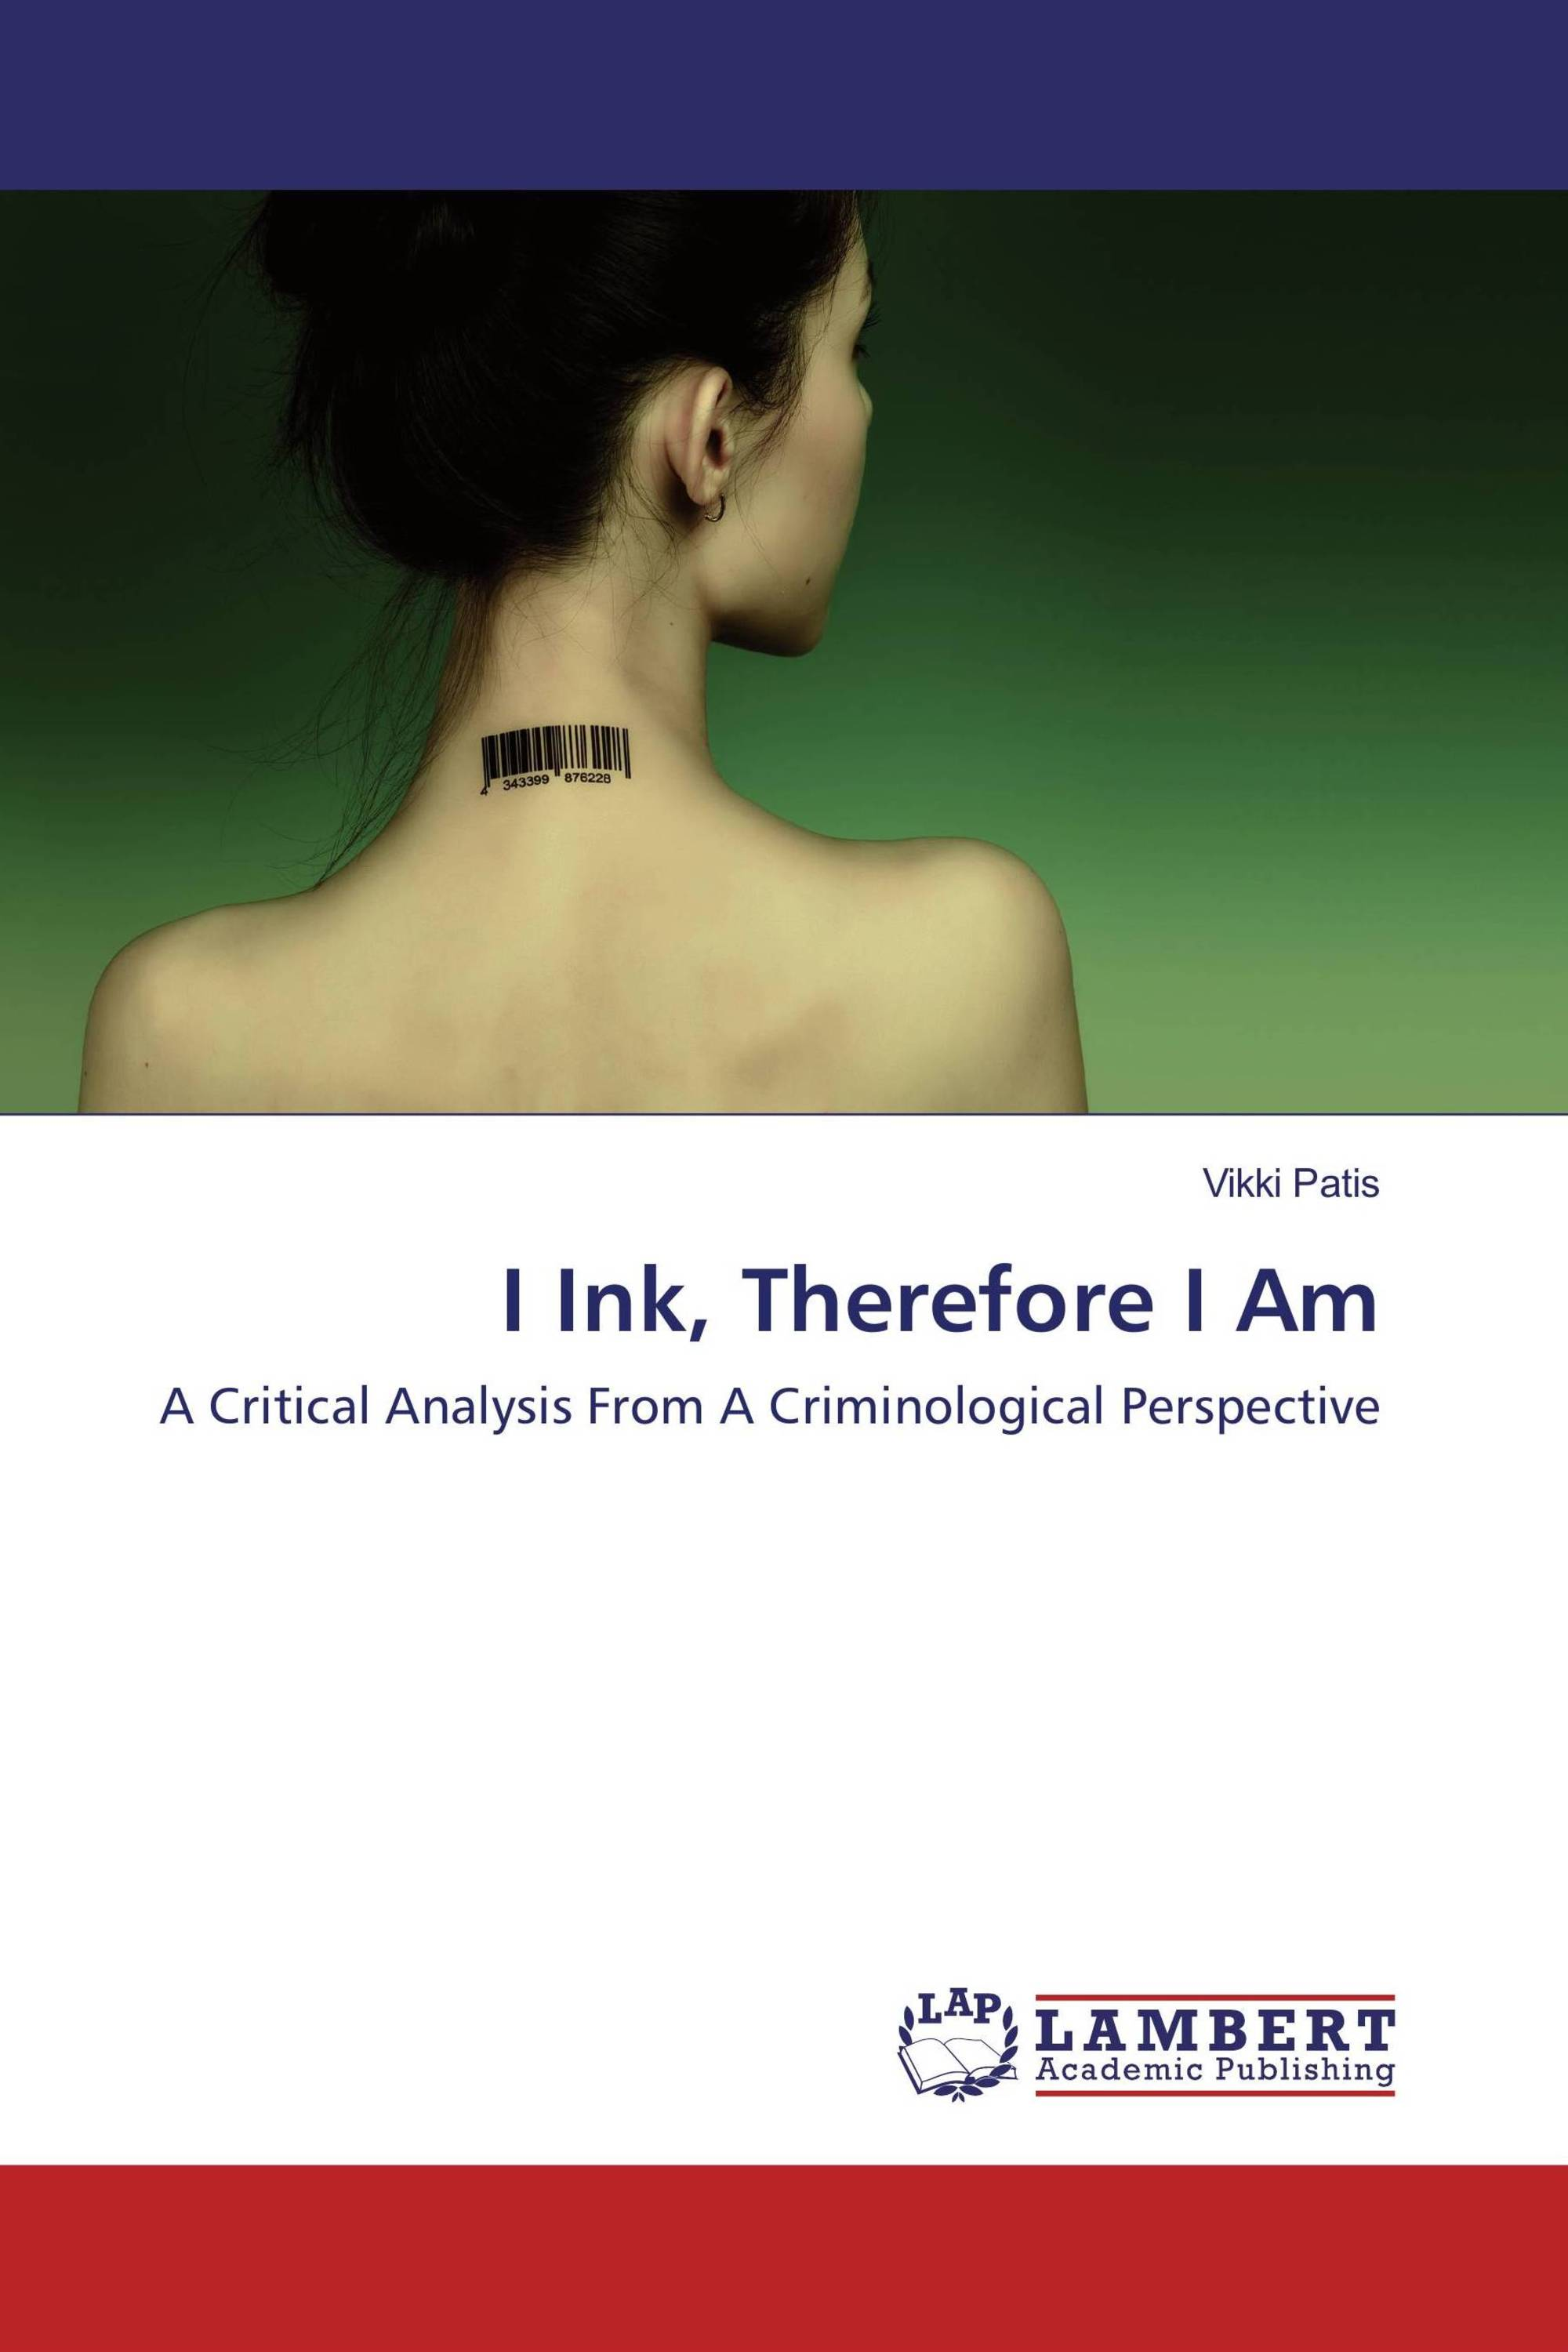 I Ink, Therefore I Am